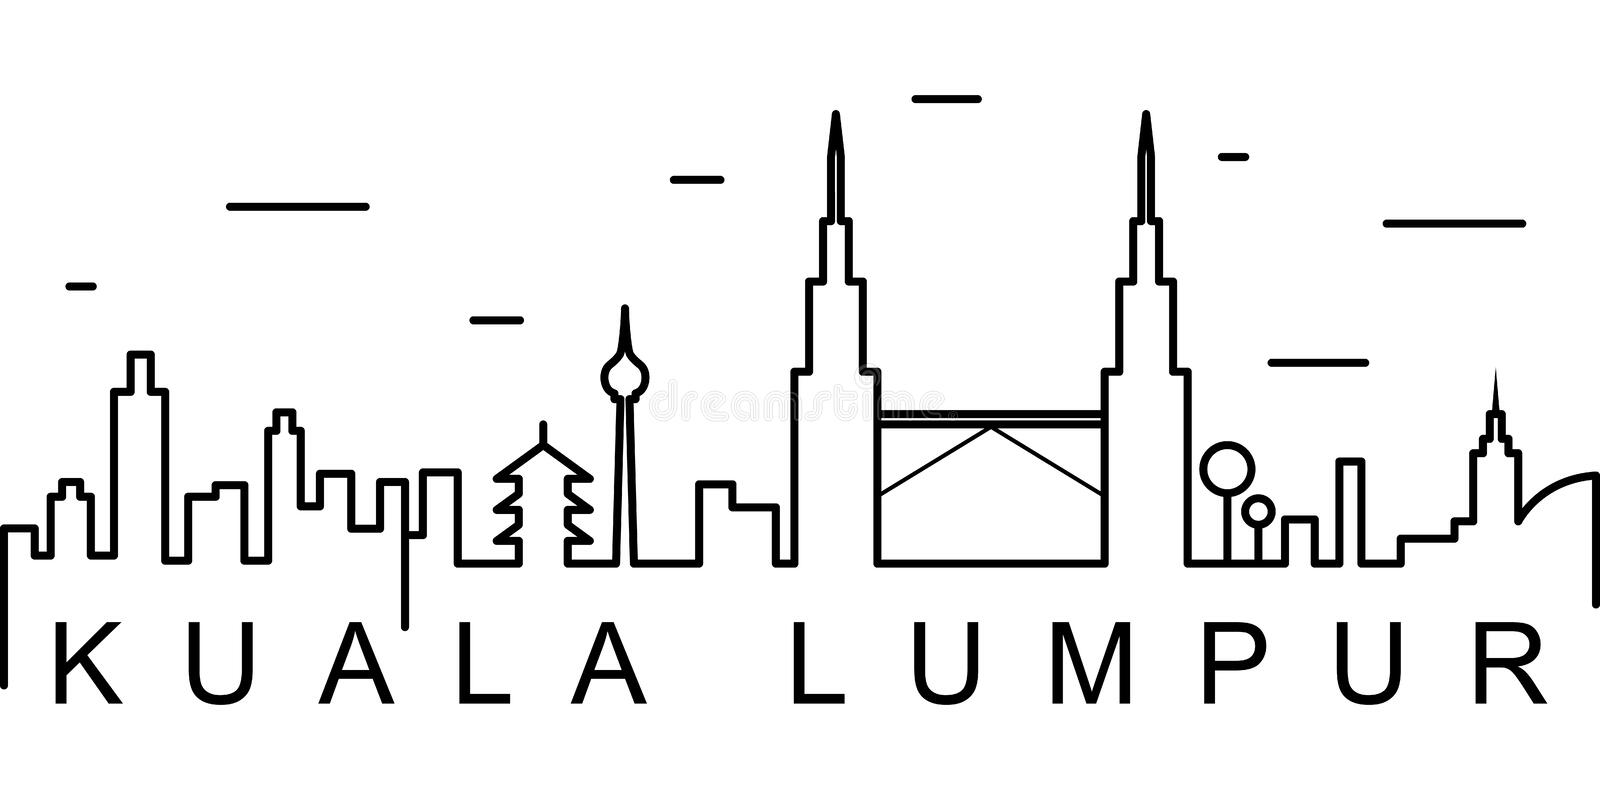 Kuala Lumpur outline icon. Can be used for web, logo, mobile app, UI, UX vector illustration